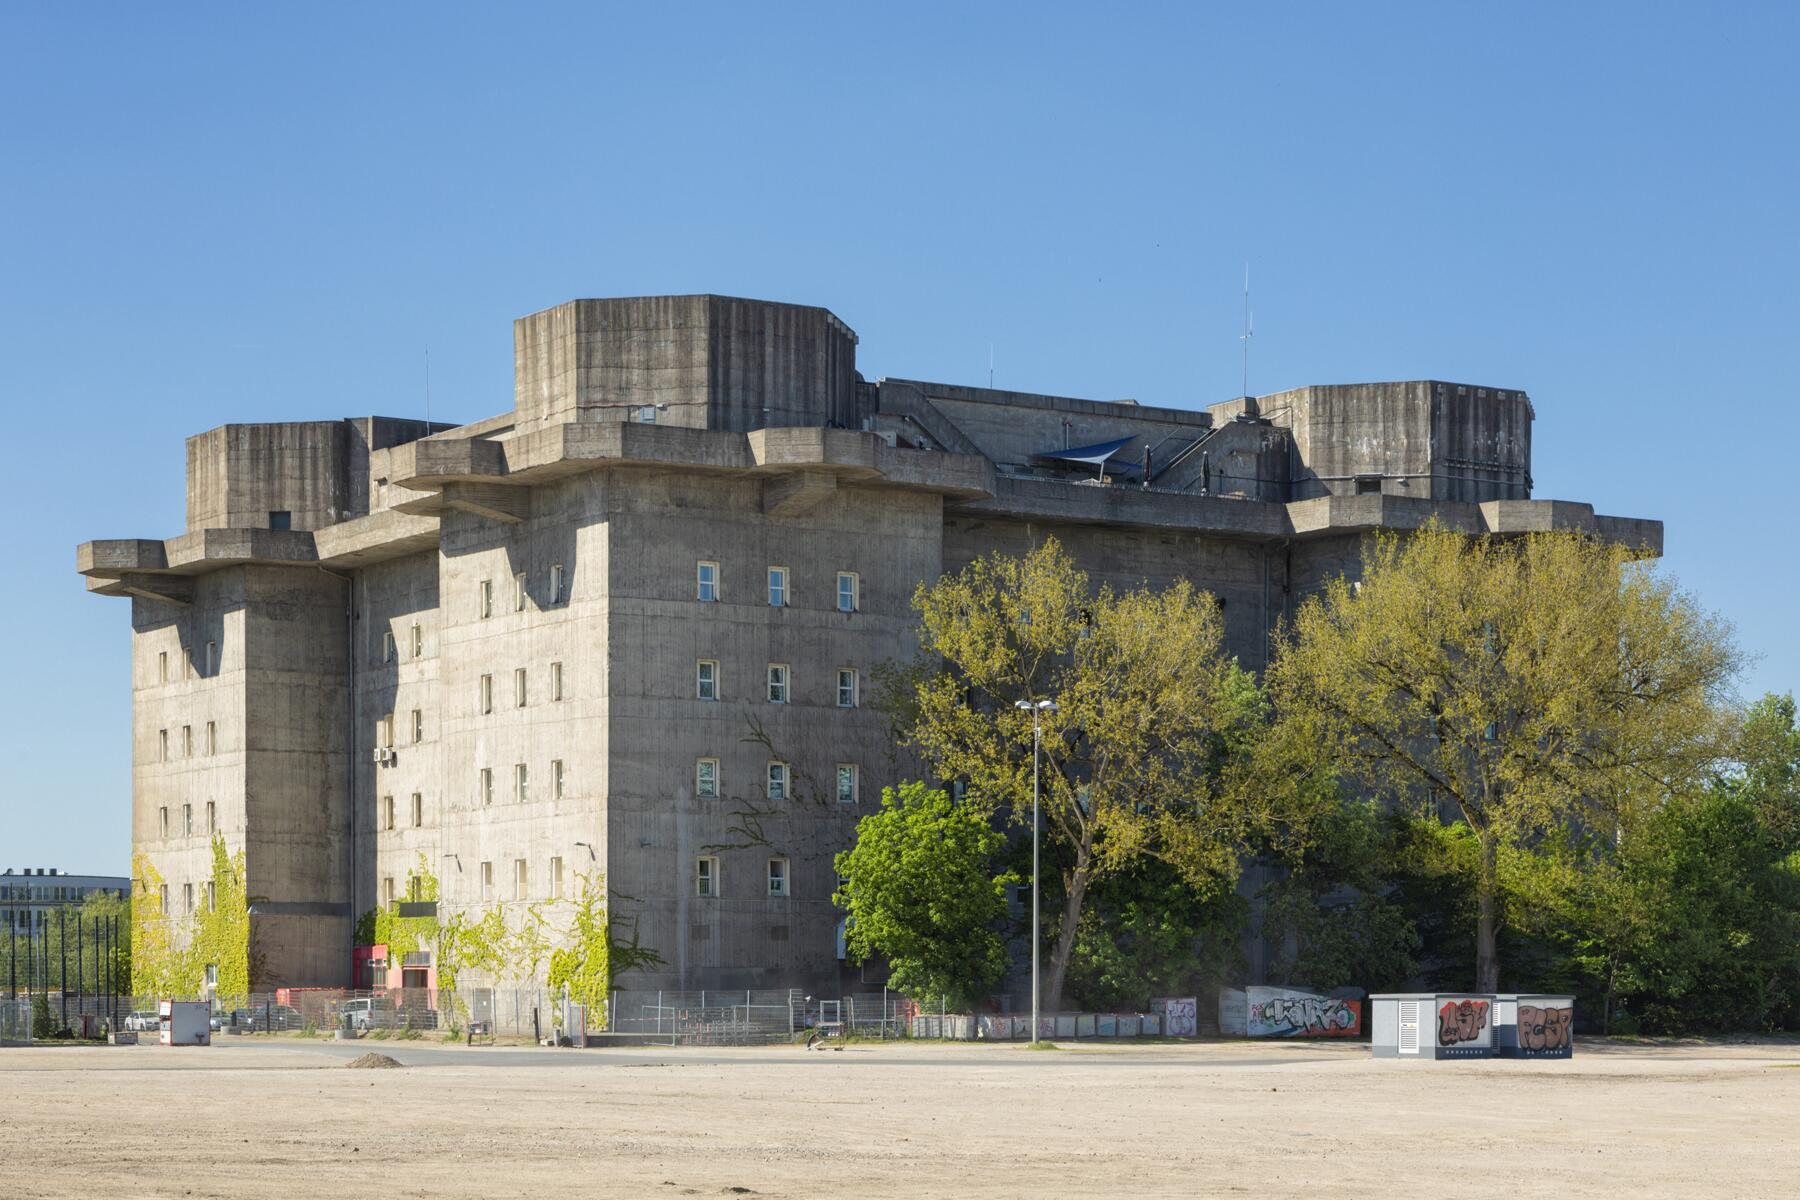 Would You Stay in a Hotel Built by Victims of the Nazi Regime?